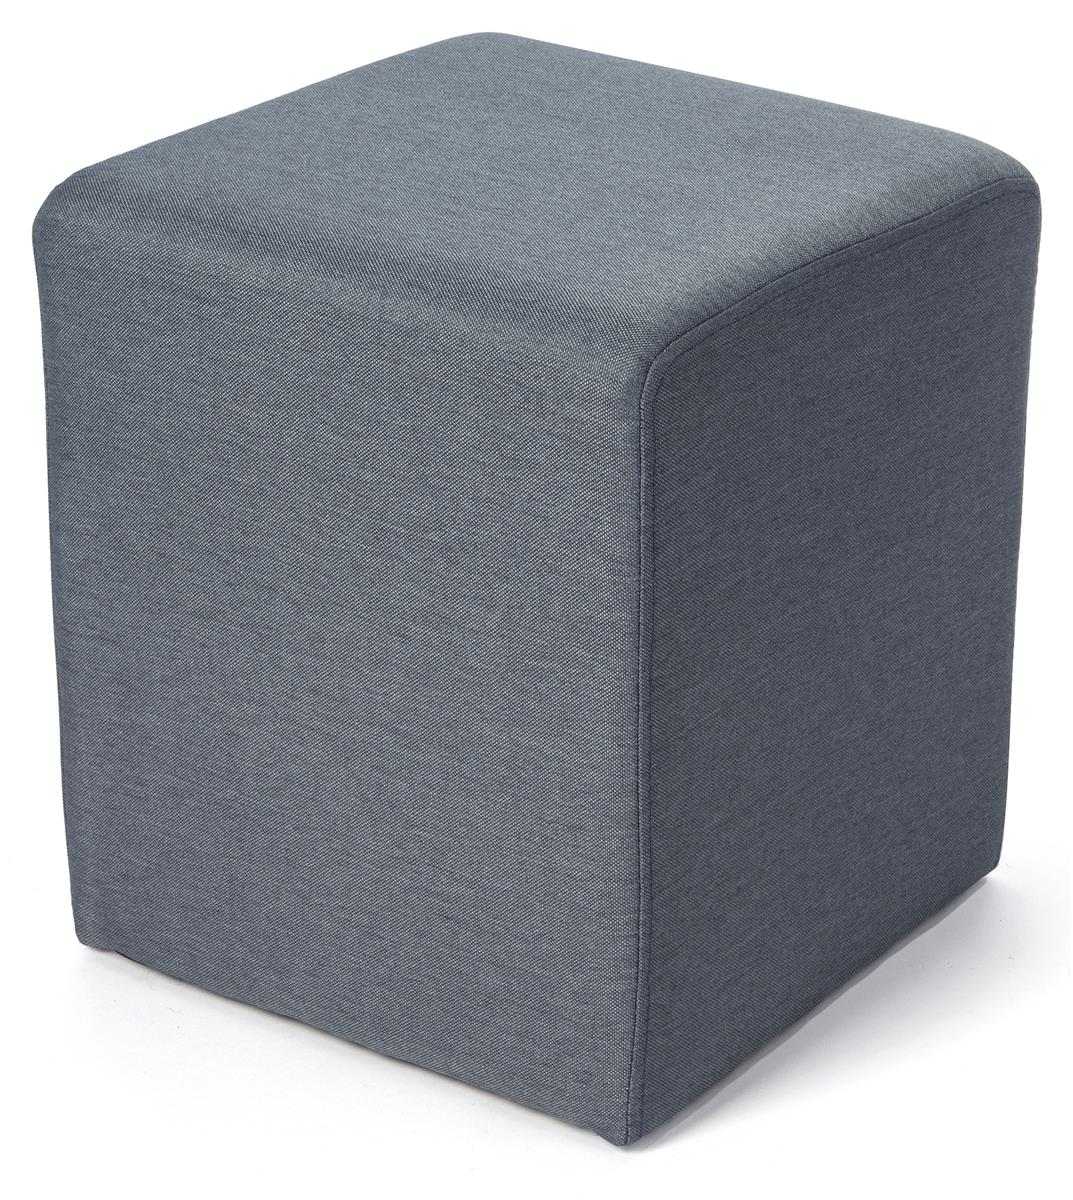 15 square upholstered ottoman stool blue